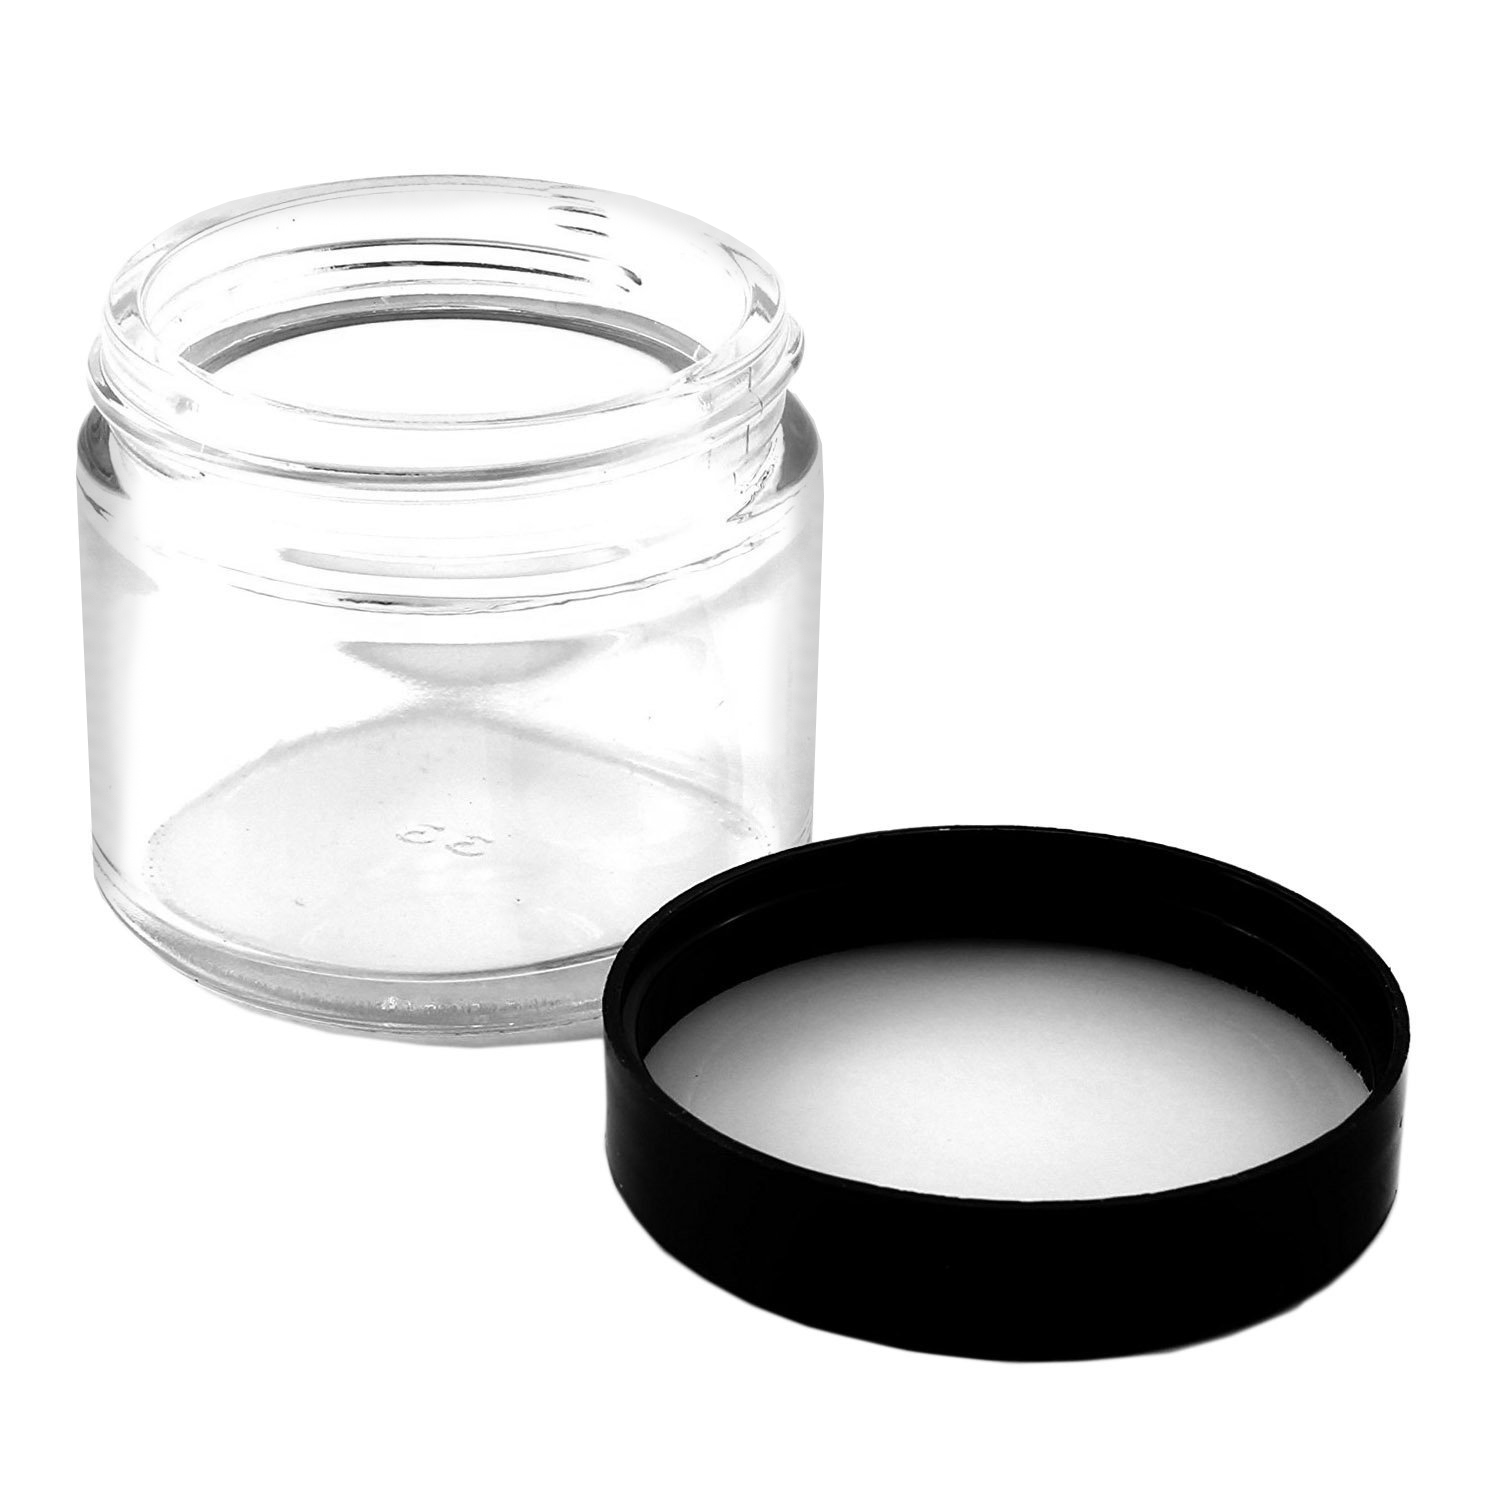 B018SFOZYA - 2oz jars black lids (12pk) - Detail